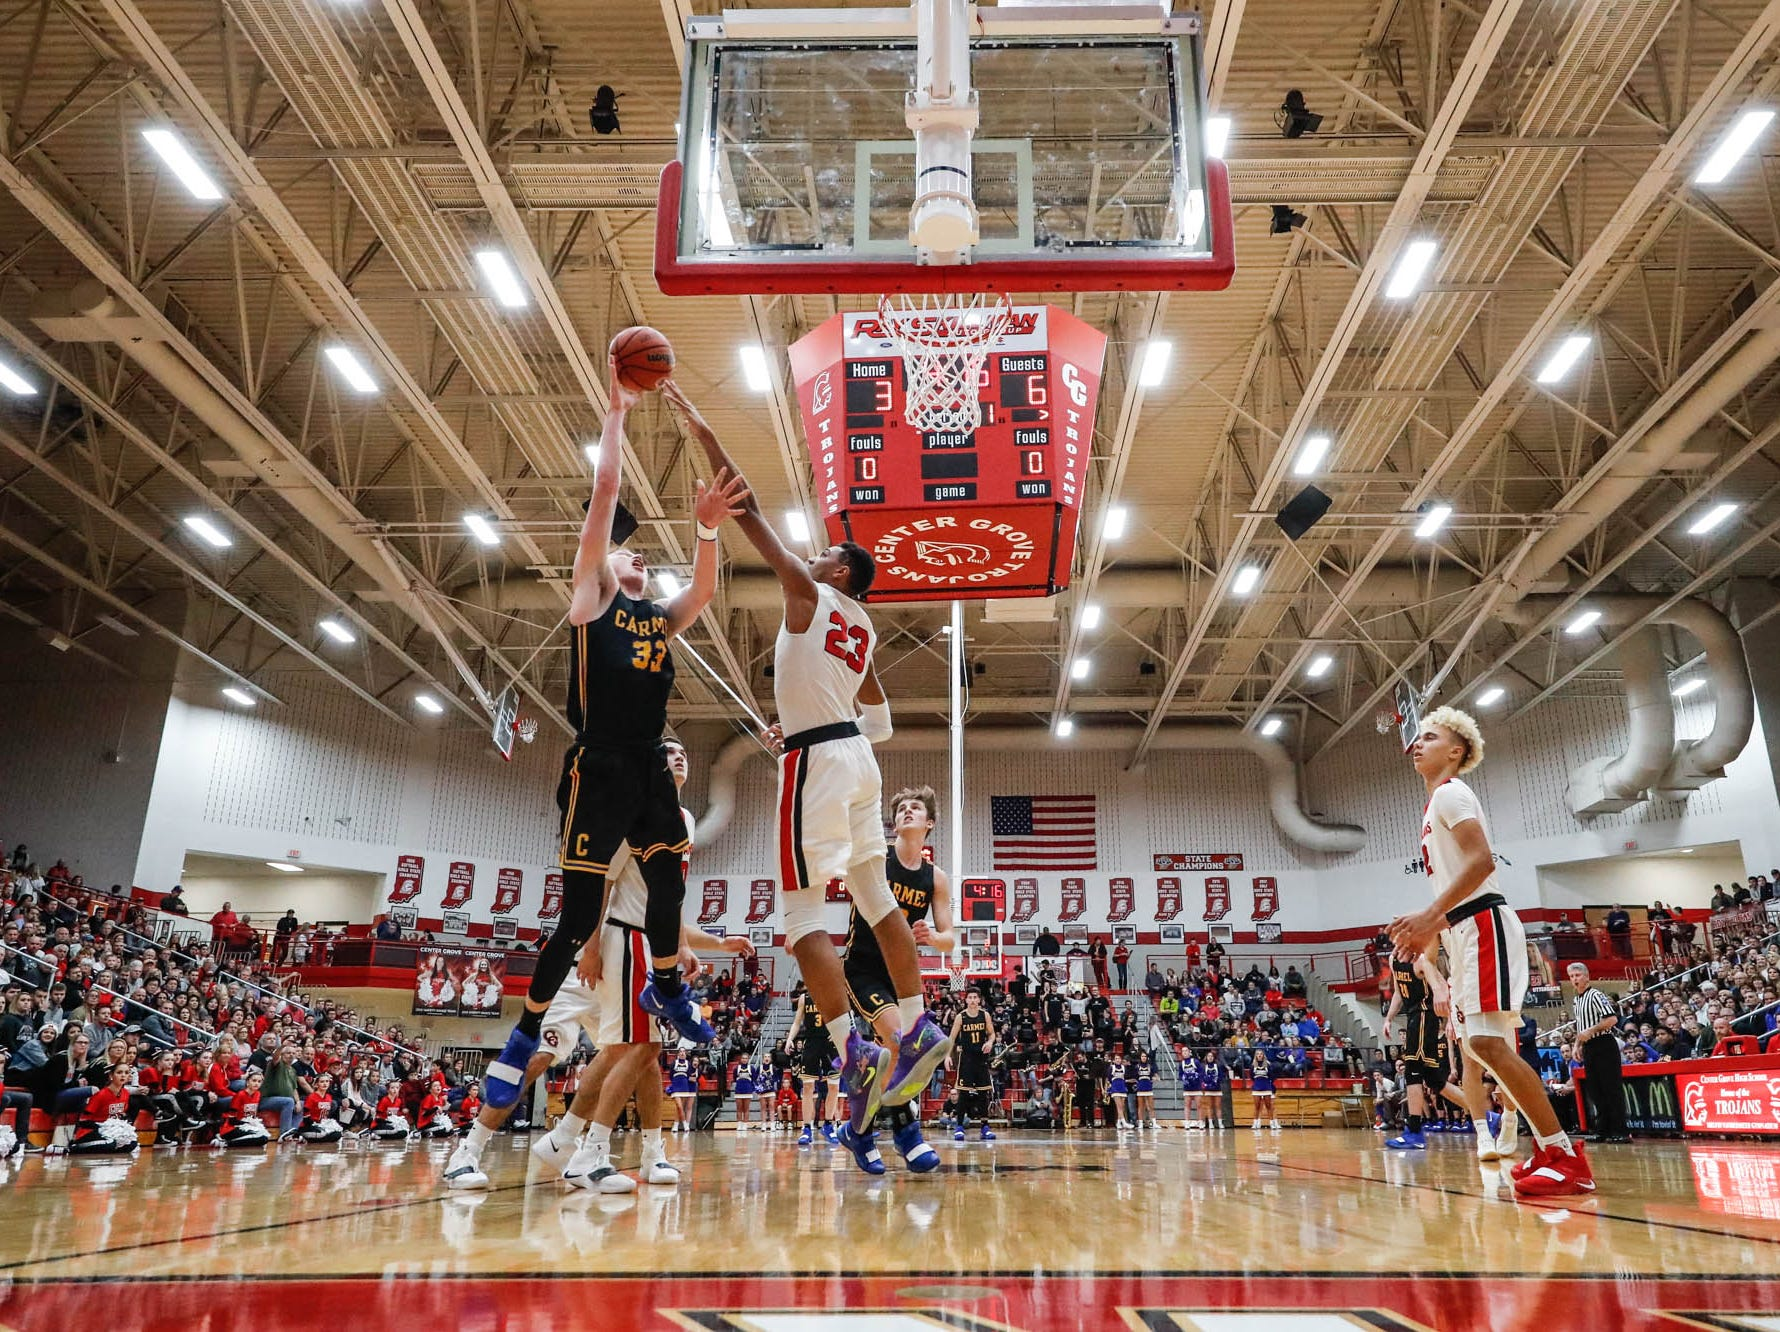 Center Grove High School's forward Trayce Jackson-Davis (23) attempts to block a shot by Carmel High School's John Michael Mulloy (33), during a game between Center Grove High School and Carmel High School, held at Center Grove on on Friday, Jan. 4, 2019.